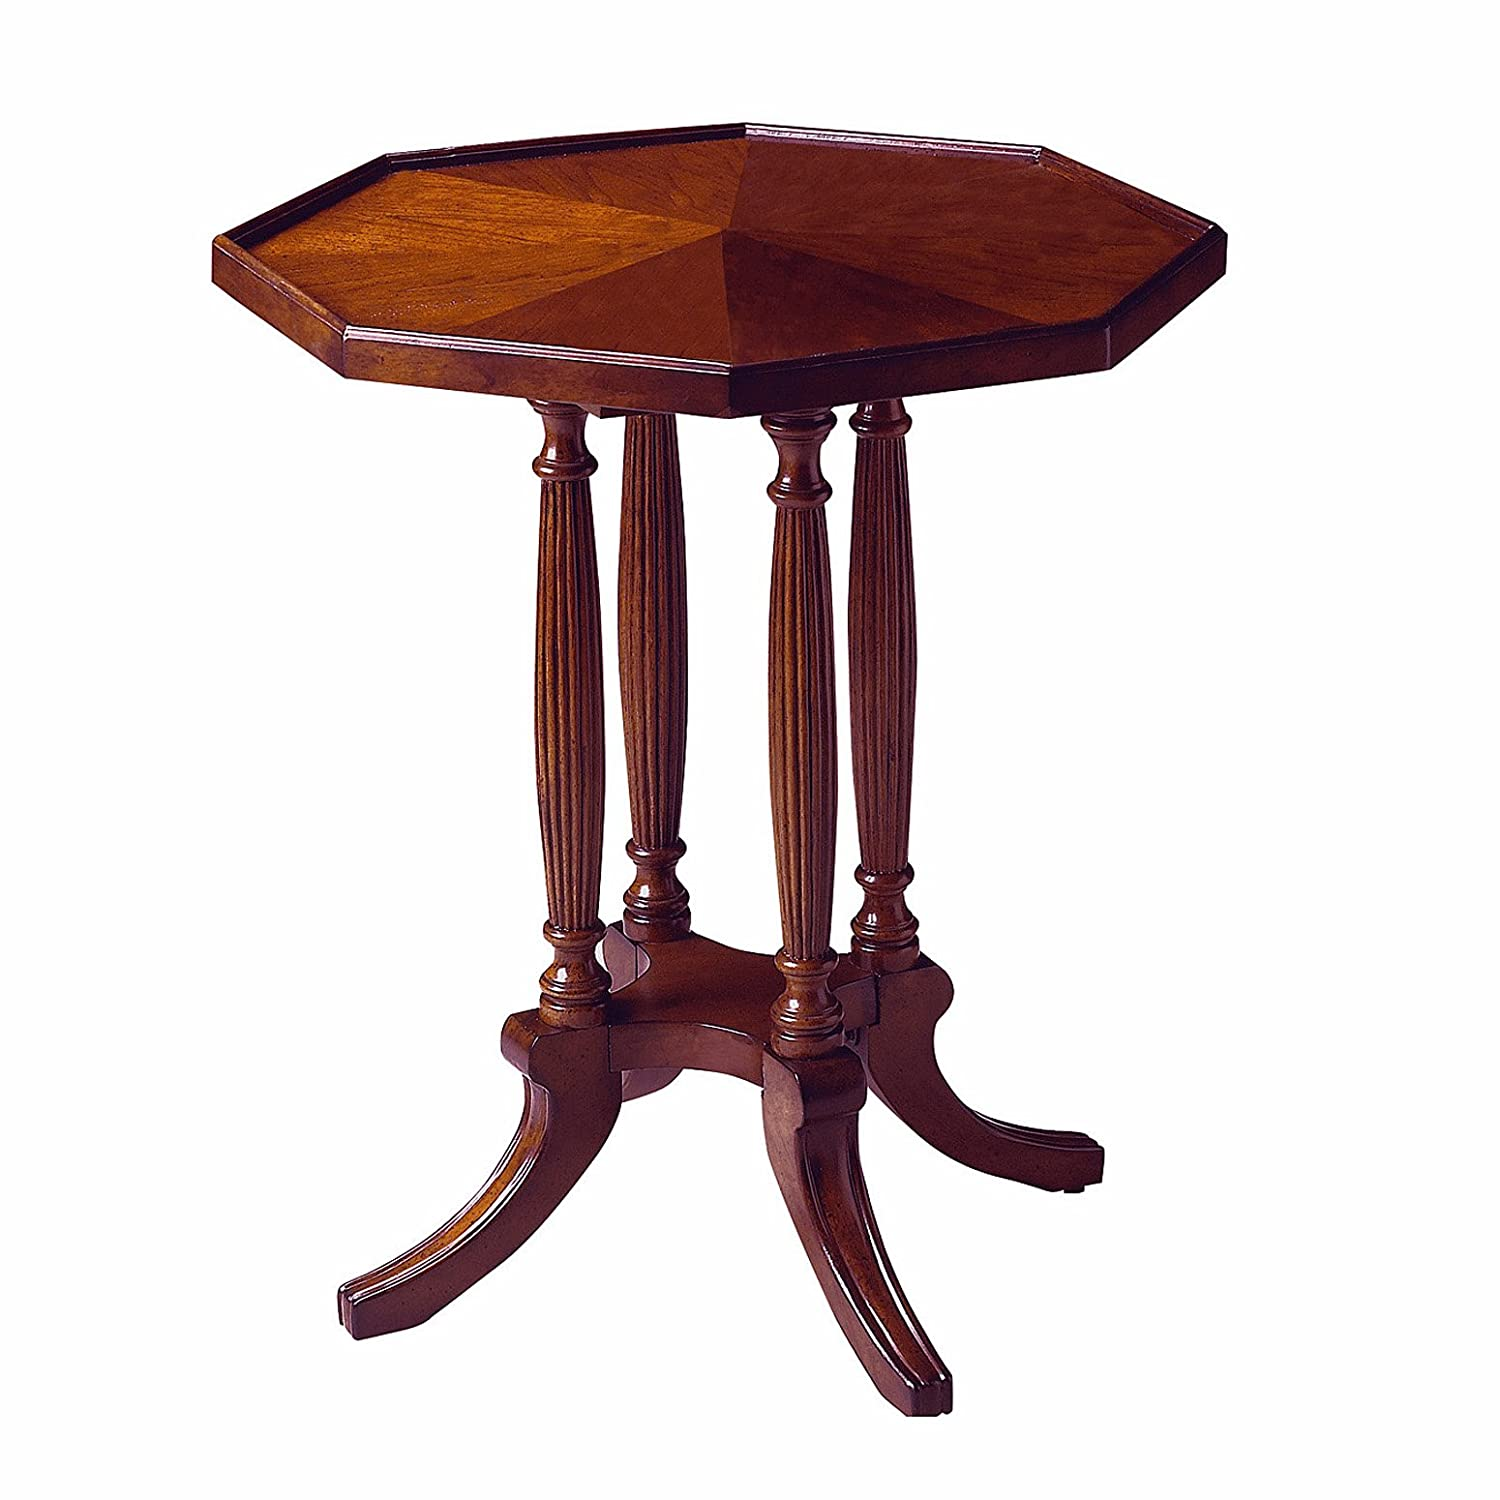 Amazon com kensington row furniture collection tables marquis octagonal accent table side table plantation cherry finish kitchen dining